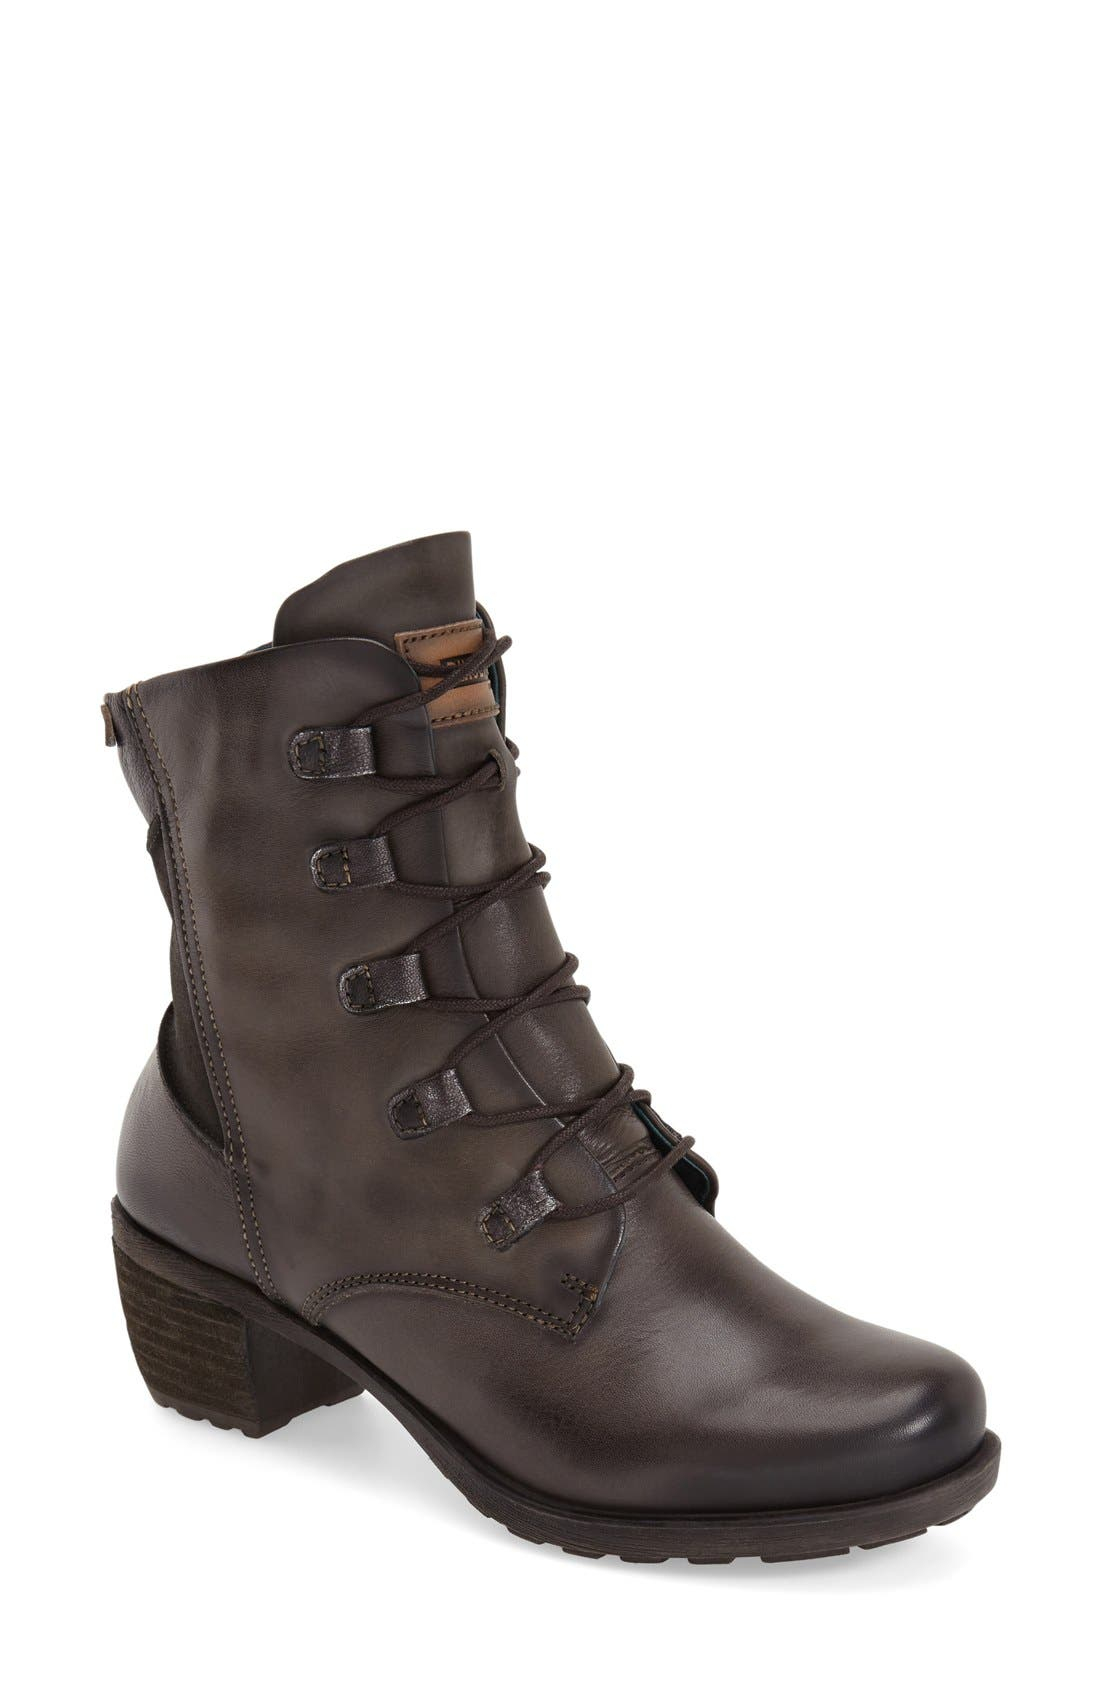 Alternate Image 1 Selected - PIKOLINOS 'Le Mans' Lace-Up Boot (Women)